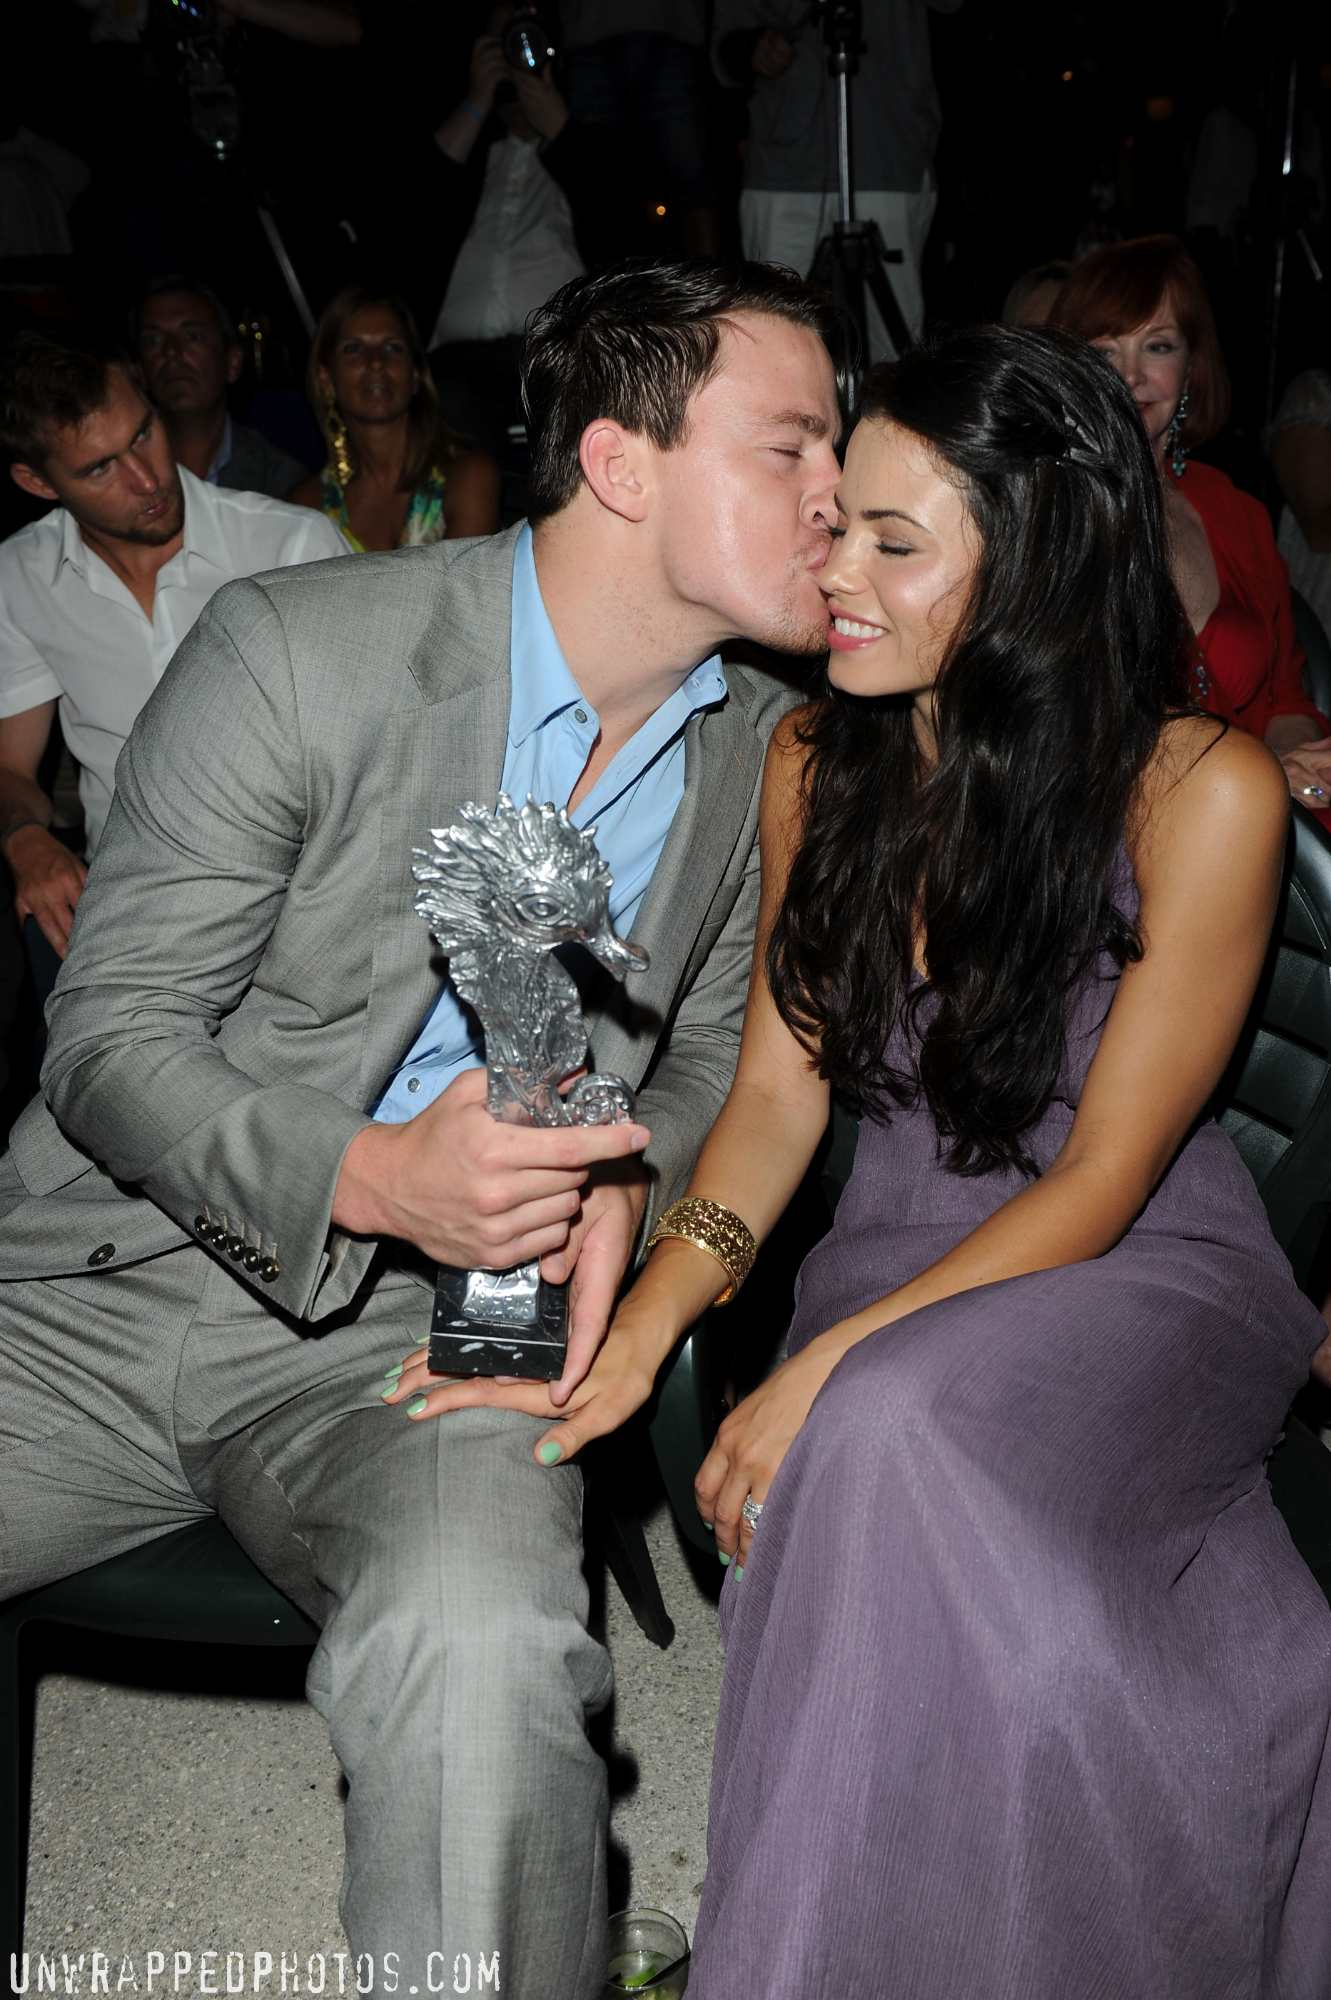 Channing Tatum and Jenna Dewan-Tatum at Italy's Ischia Film Festival